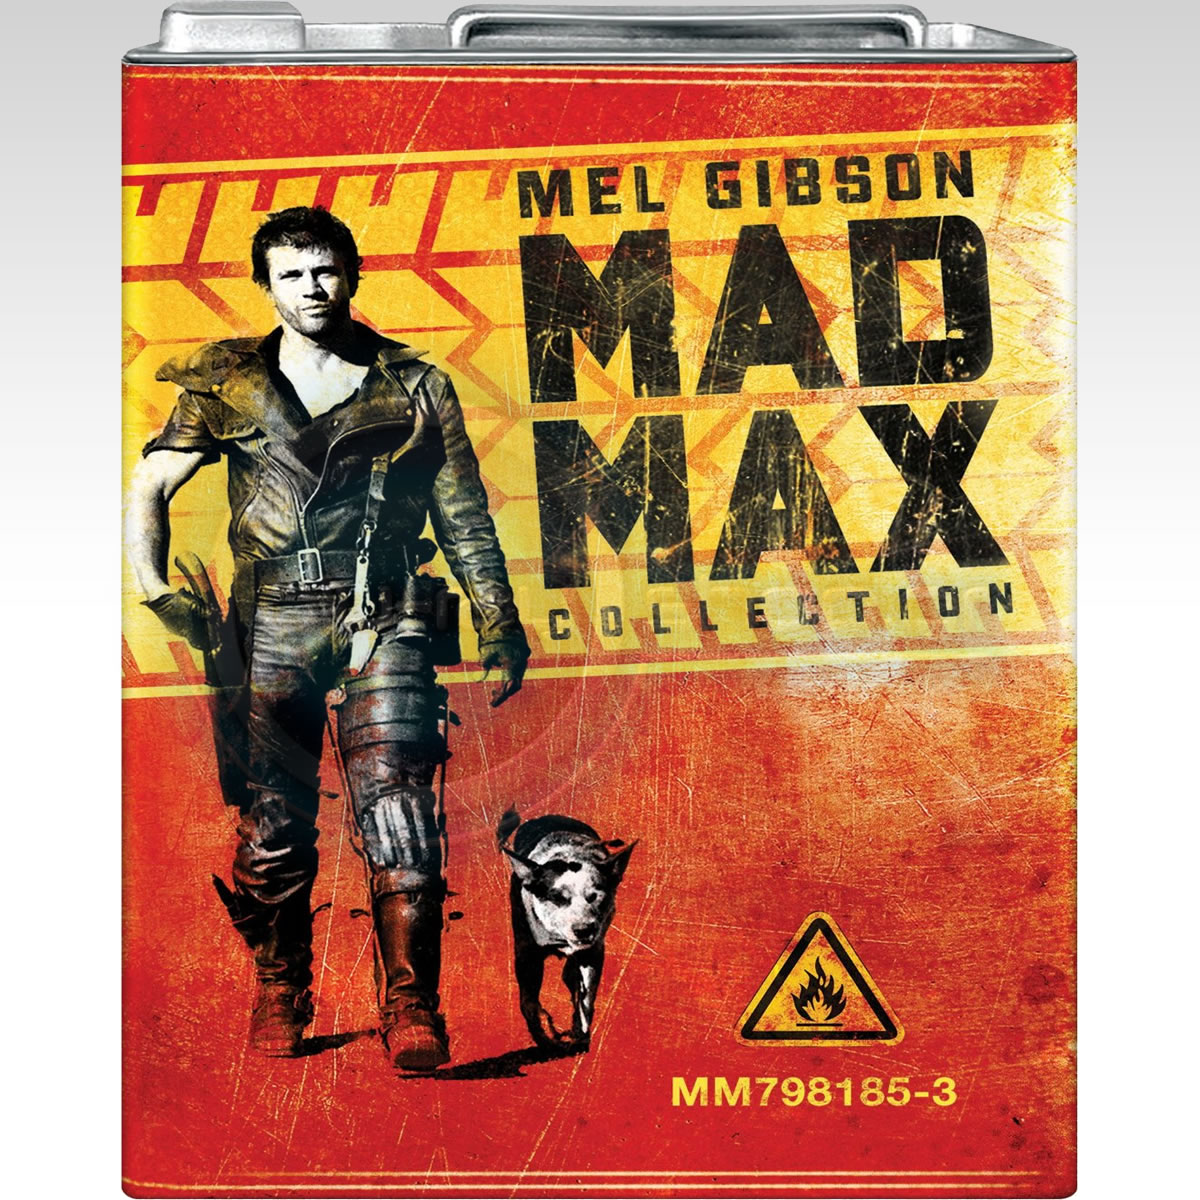 MAD MAX 1-3 COLLECTION - Limited Collector's Edition Gas Canister (3 BLU-RAY)